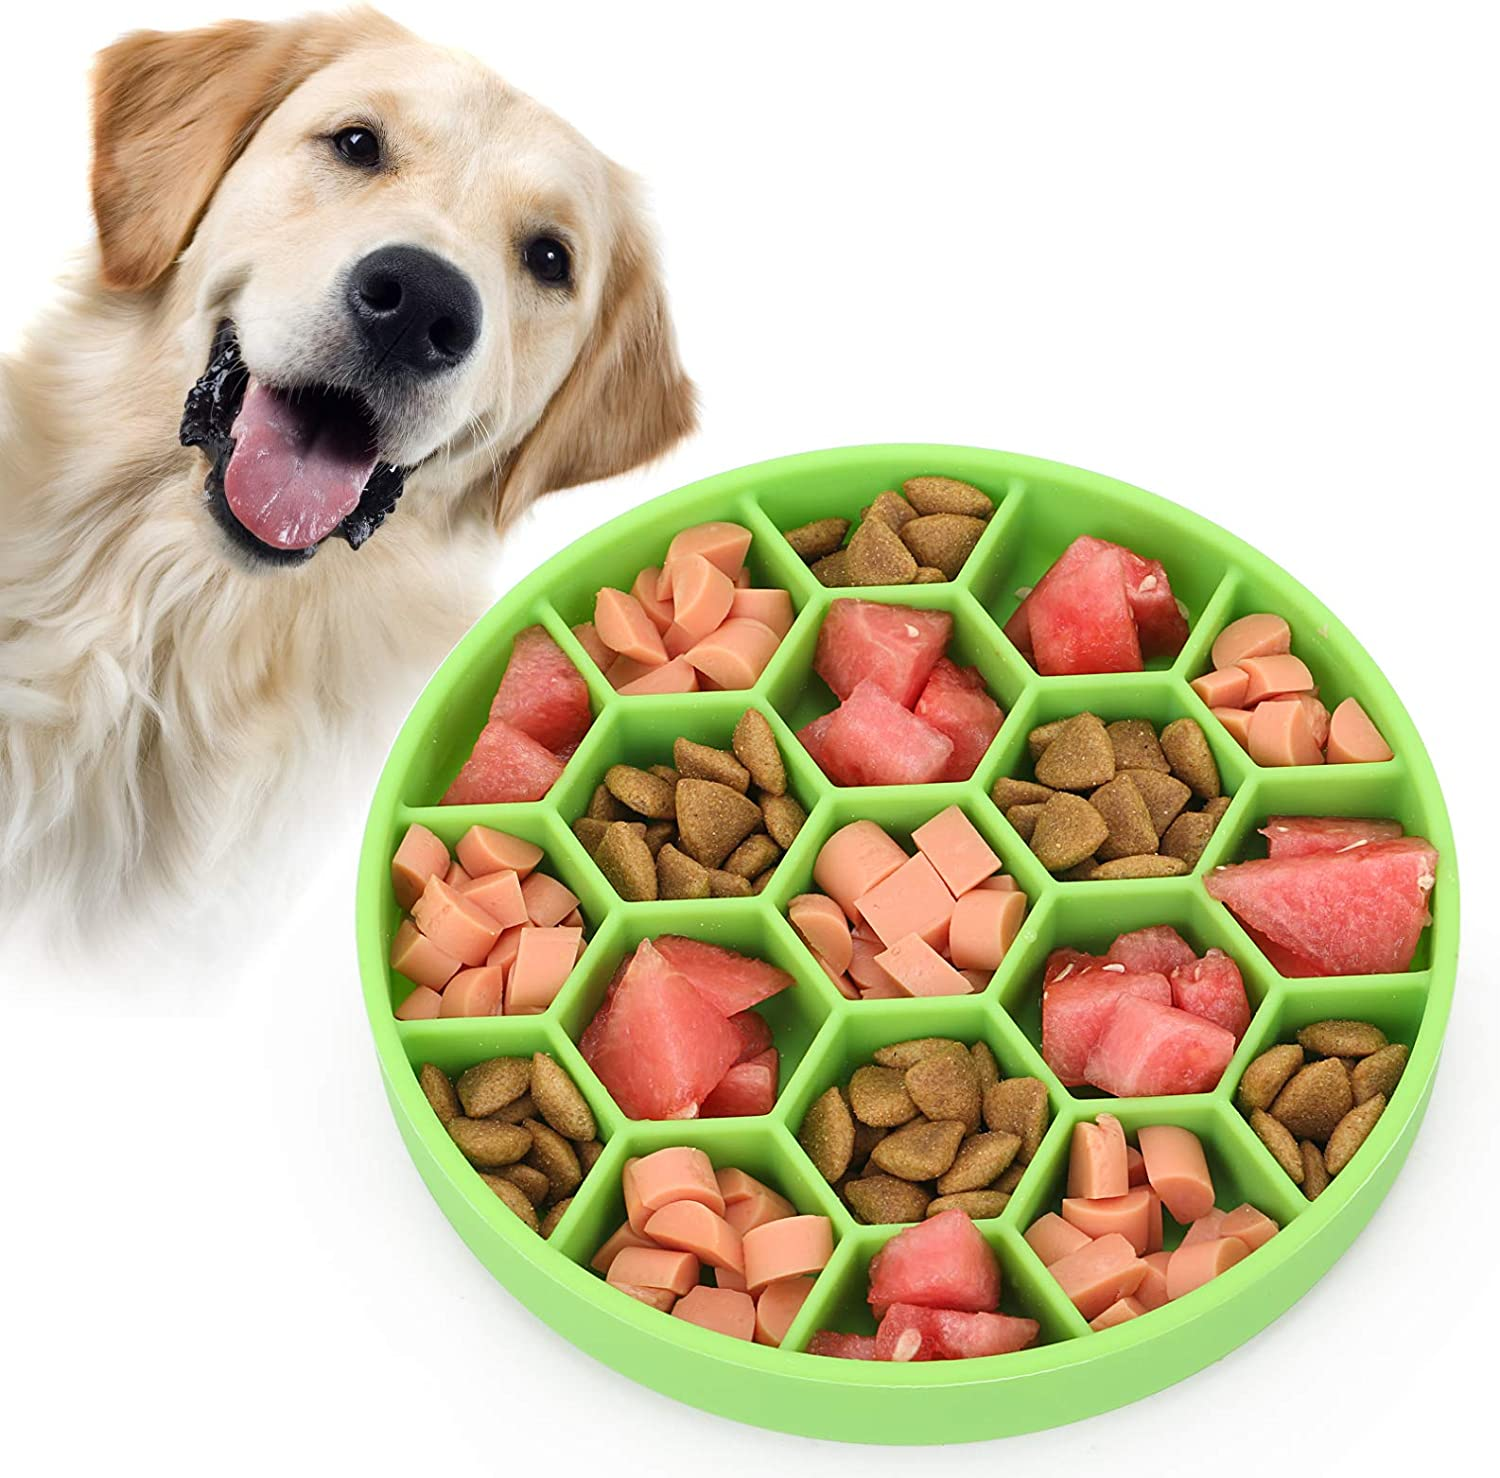 Pawow Slow Feeder Dog Bowl with Bottom Suction Cup, Puzzle Feeders Bowl Fun Feeder Interactive Bloat Stop Dogs Dish, Silicone Slow Feed Pet Food Water Bowl for Large Medium Small Dogs(Green)